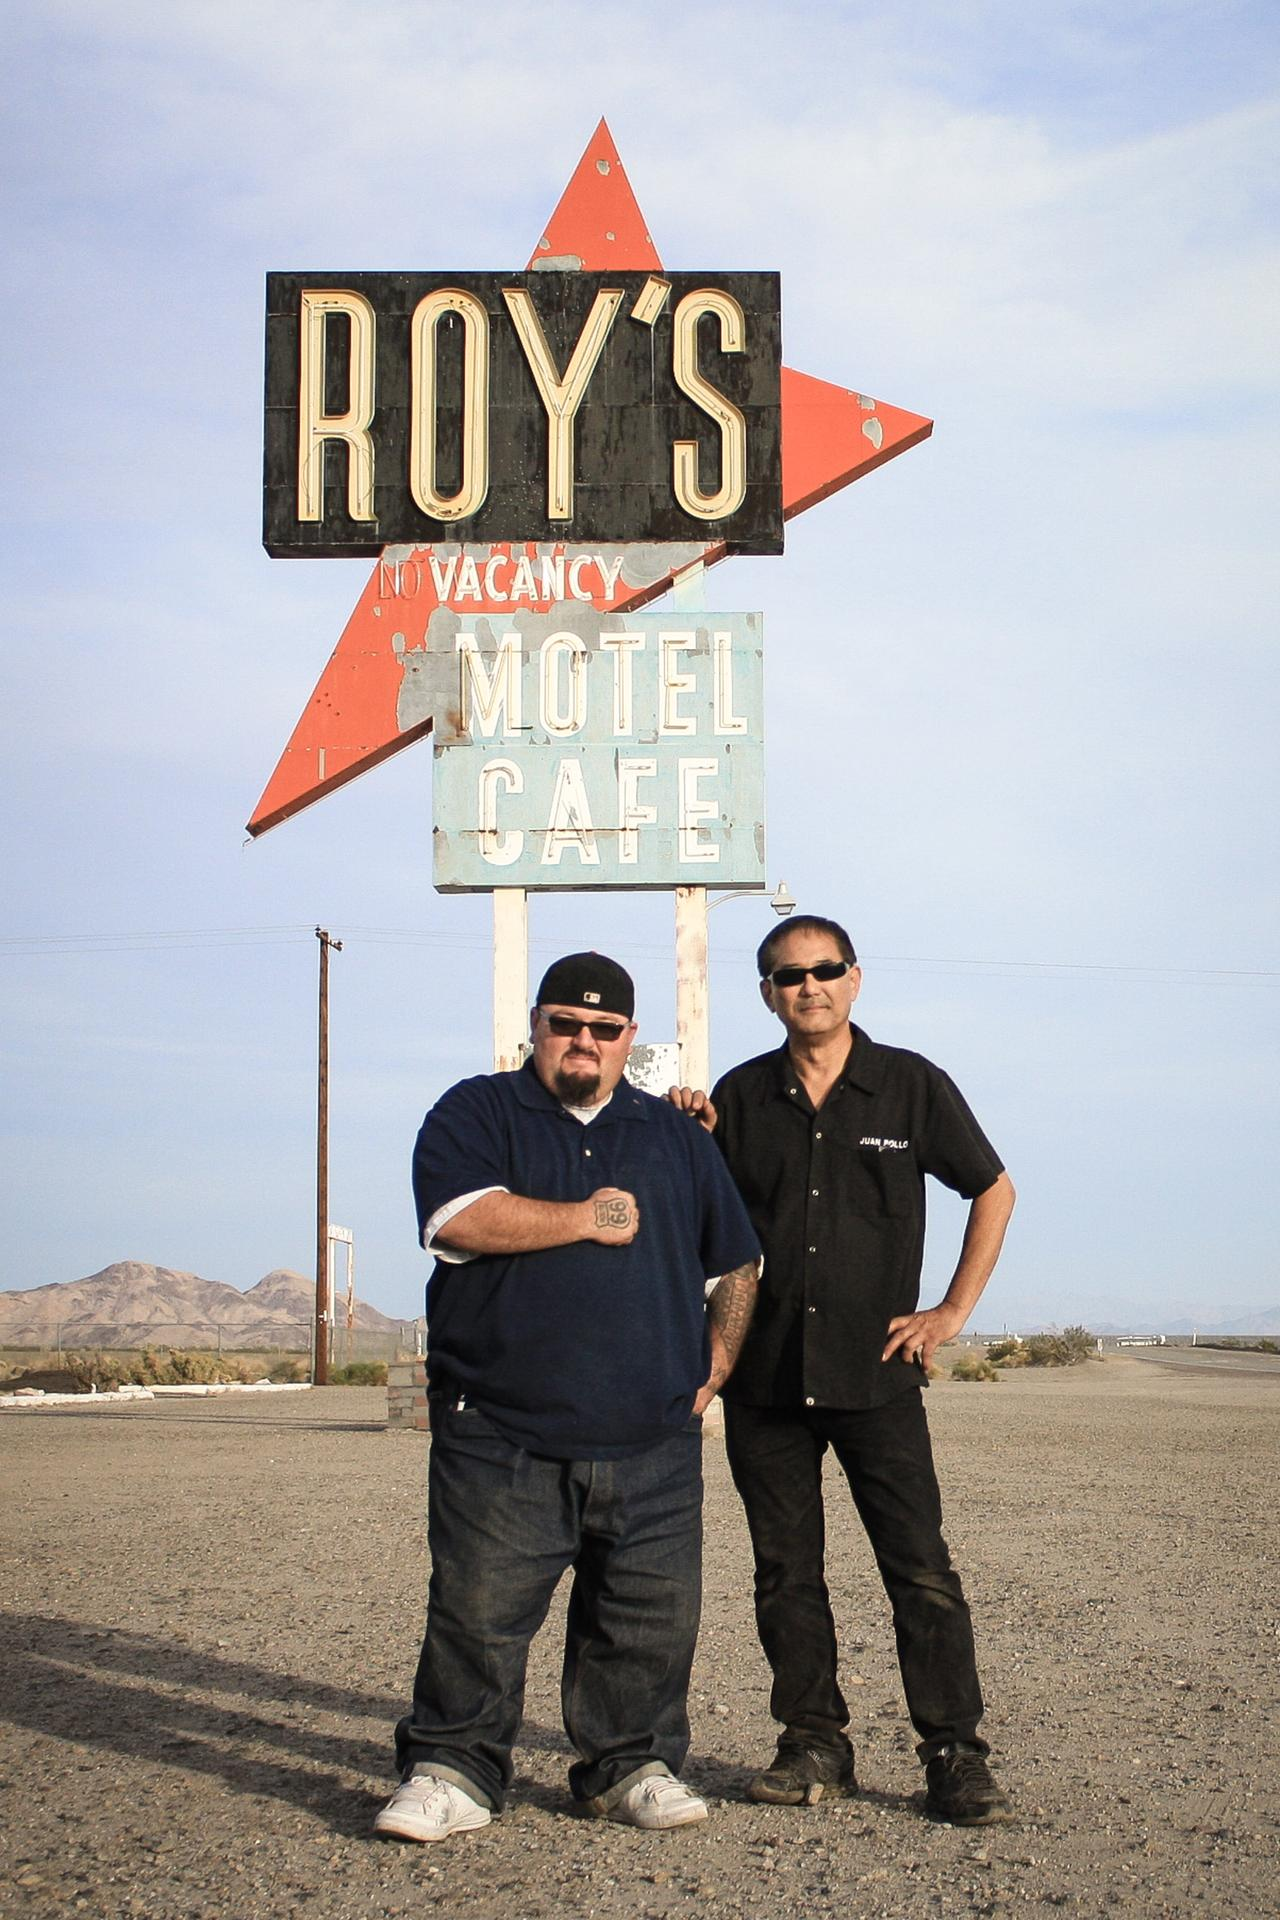 Charlie Aceves and Albert Okura stand in front of the historic Roy's Motel and Café sign. Okura, founder of the Juan Pollo chicken chain, bought the almost-ghost town of Amboy ten years ago and hopes to restore it to its former glory with the help of his righthand man, Aceves.